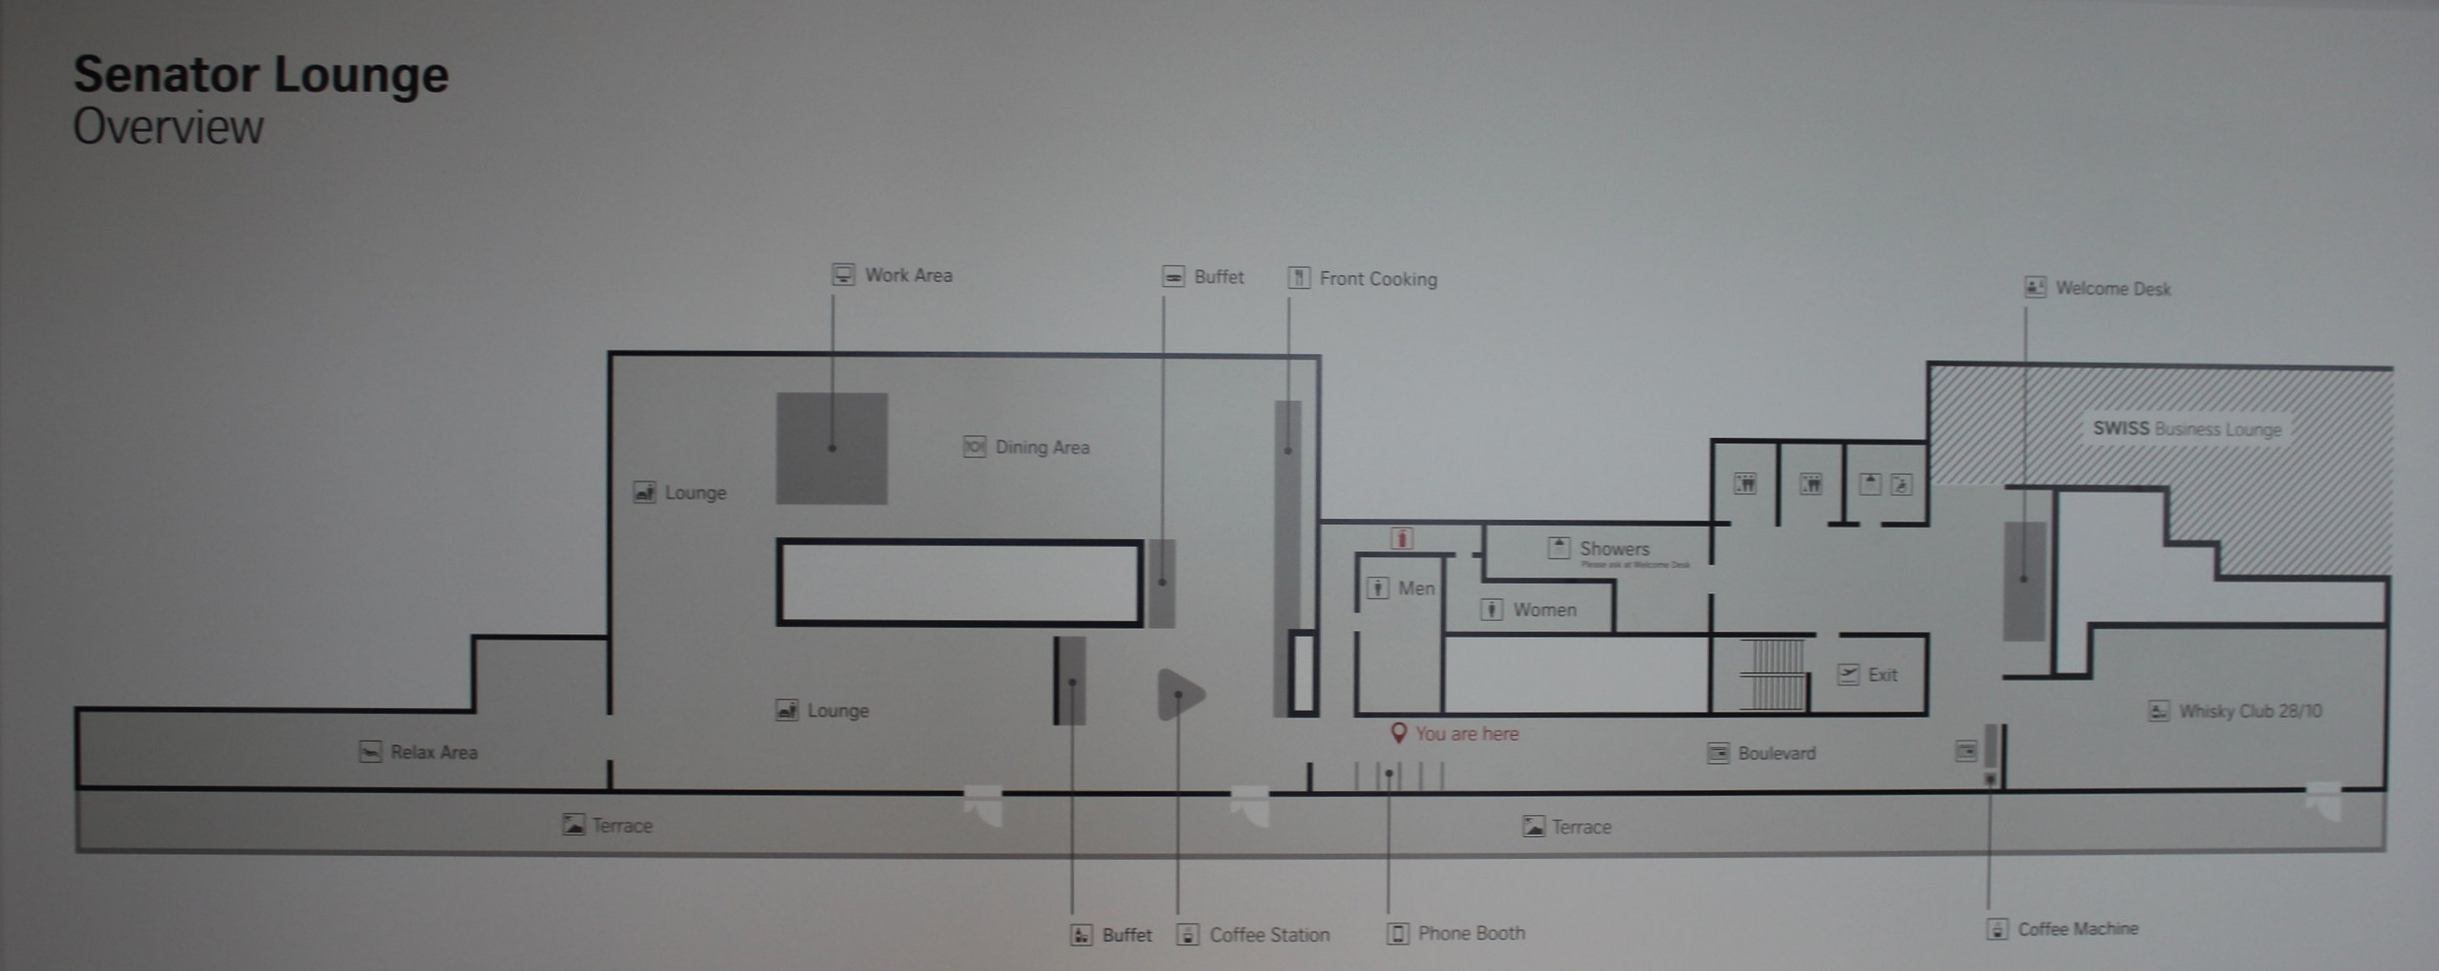 Swiss Senator Lounge Zurich – Lounge map